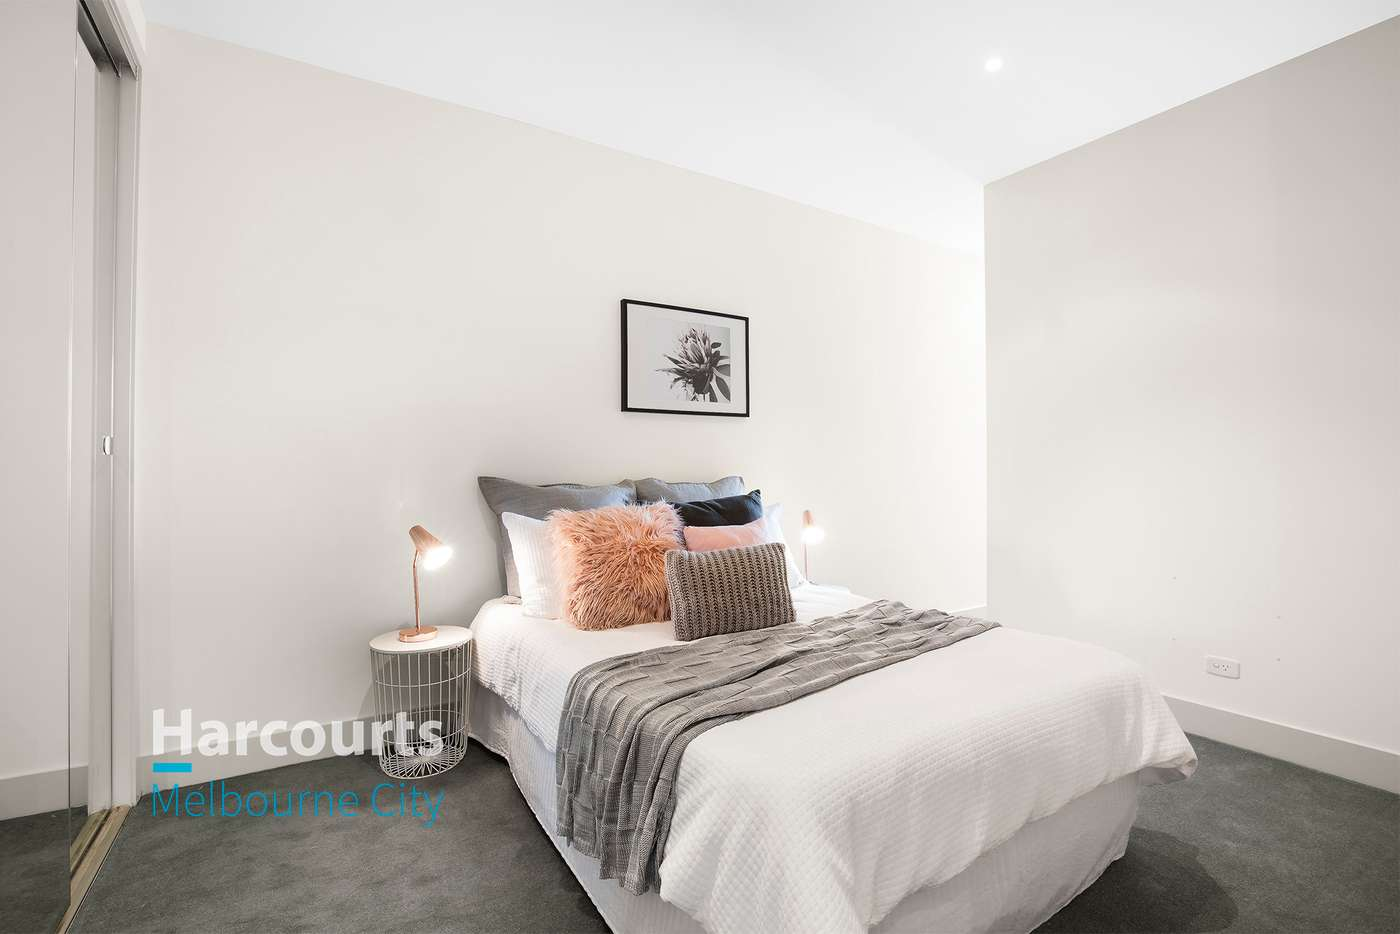 Fifth view of Homely apartment listing, 102/30 Wreckyn Street, North Melbourne VIC 3051